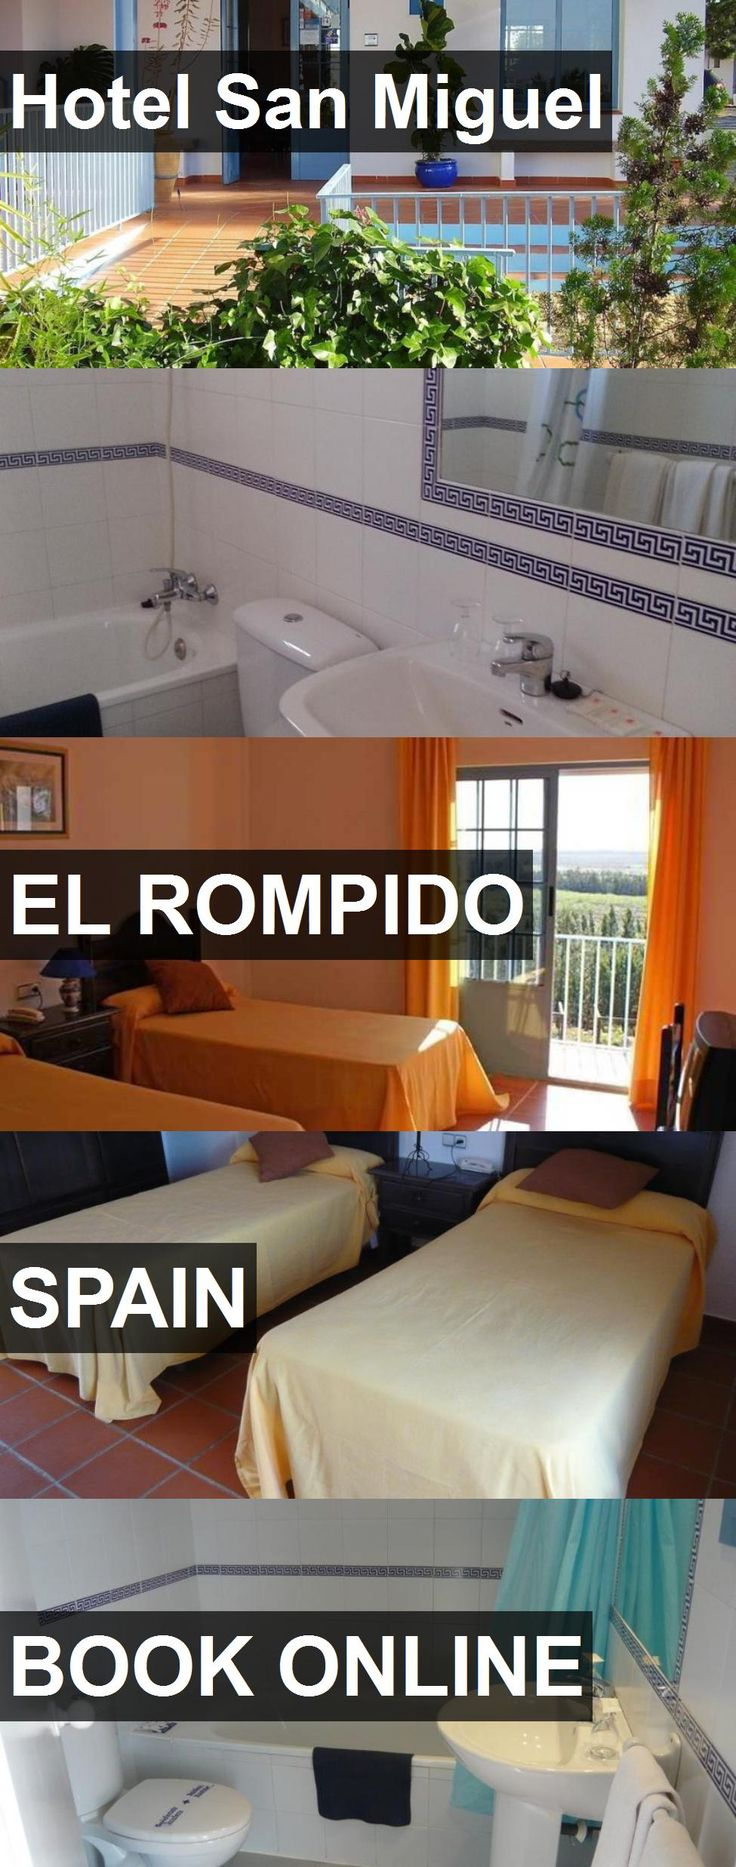 Hotel Hotel San Miguel in El Rompido, Spain. For more information, photos, reviews and best prices please follow the link. #Spain #ElRompido #HotelSanMiguel #hotel #travel #vacation